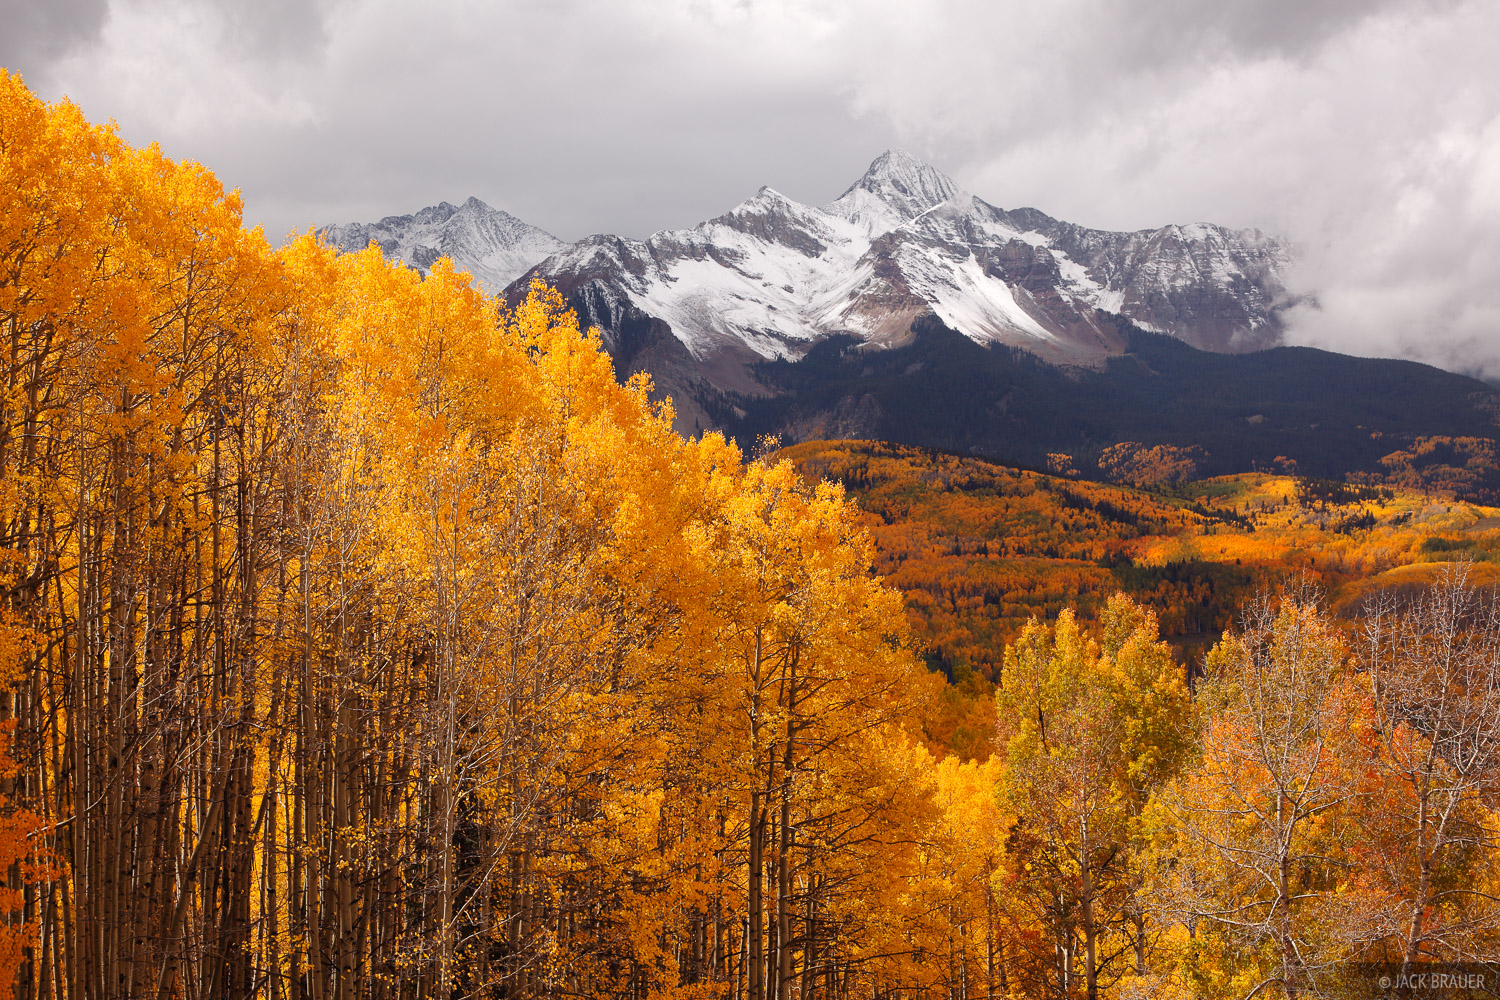 Wilson Peak, San Juan Mountains, Colorado, fourteener, autumn, aspens, Telluride, photo